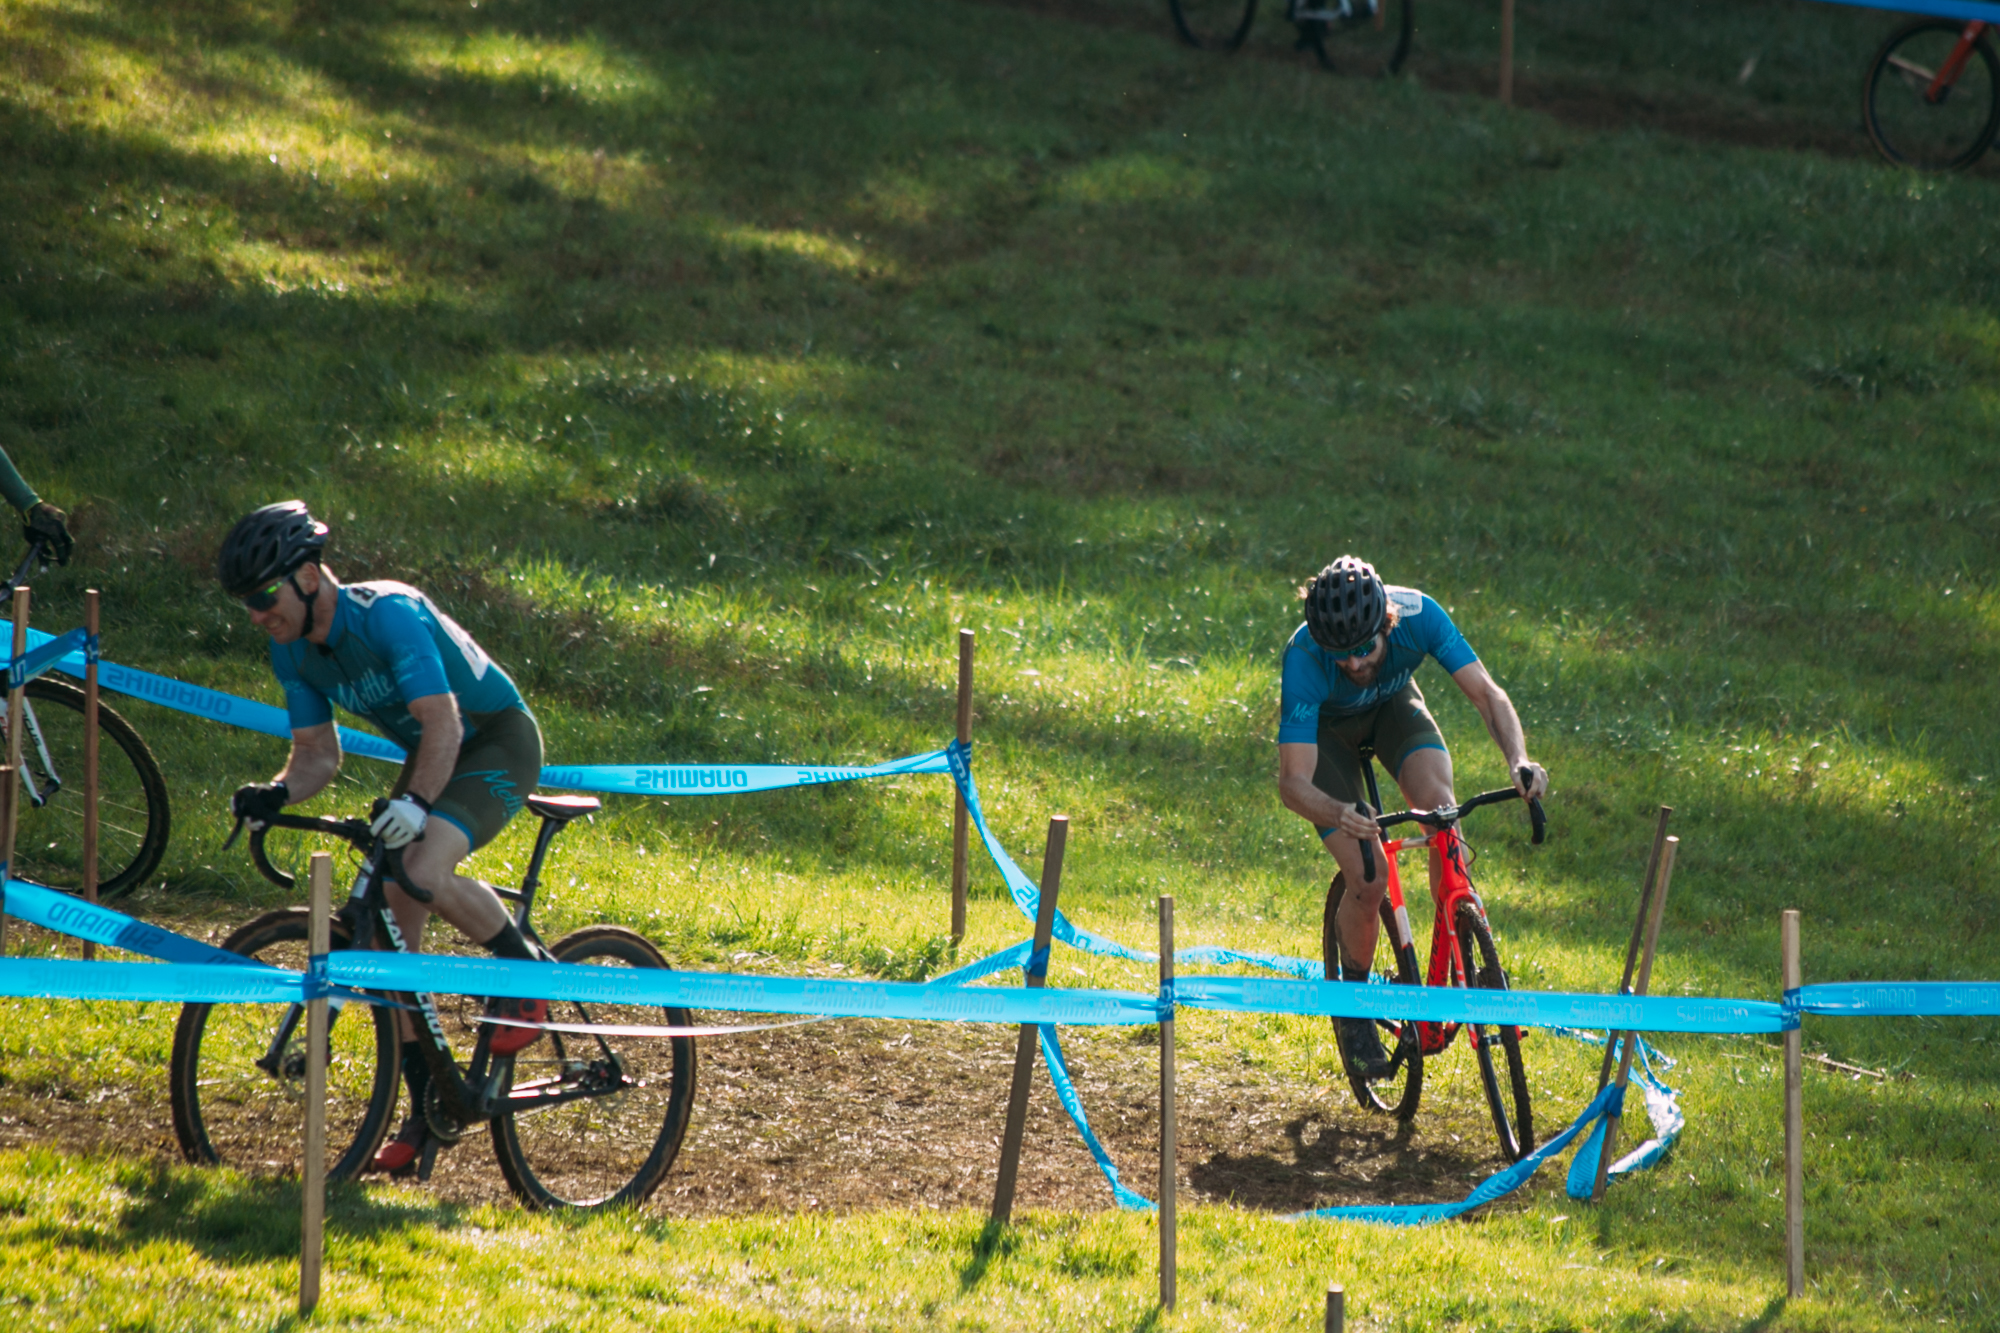 Cyclocross18_CCCX_RainierHS-75-mettlecycling.jpg